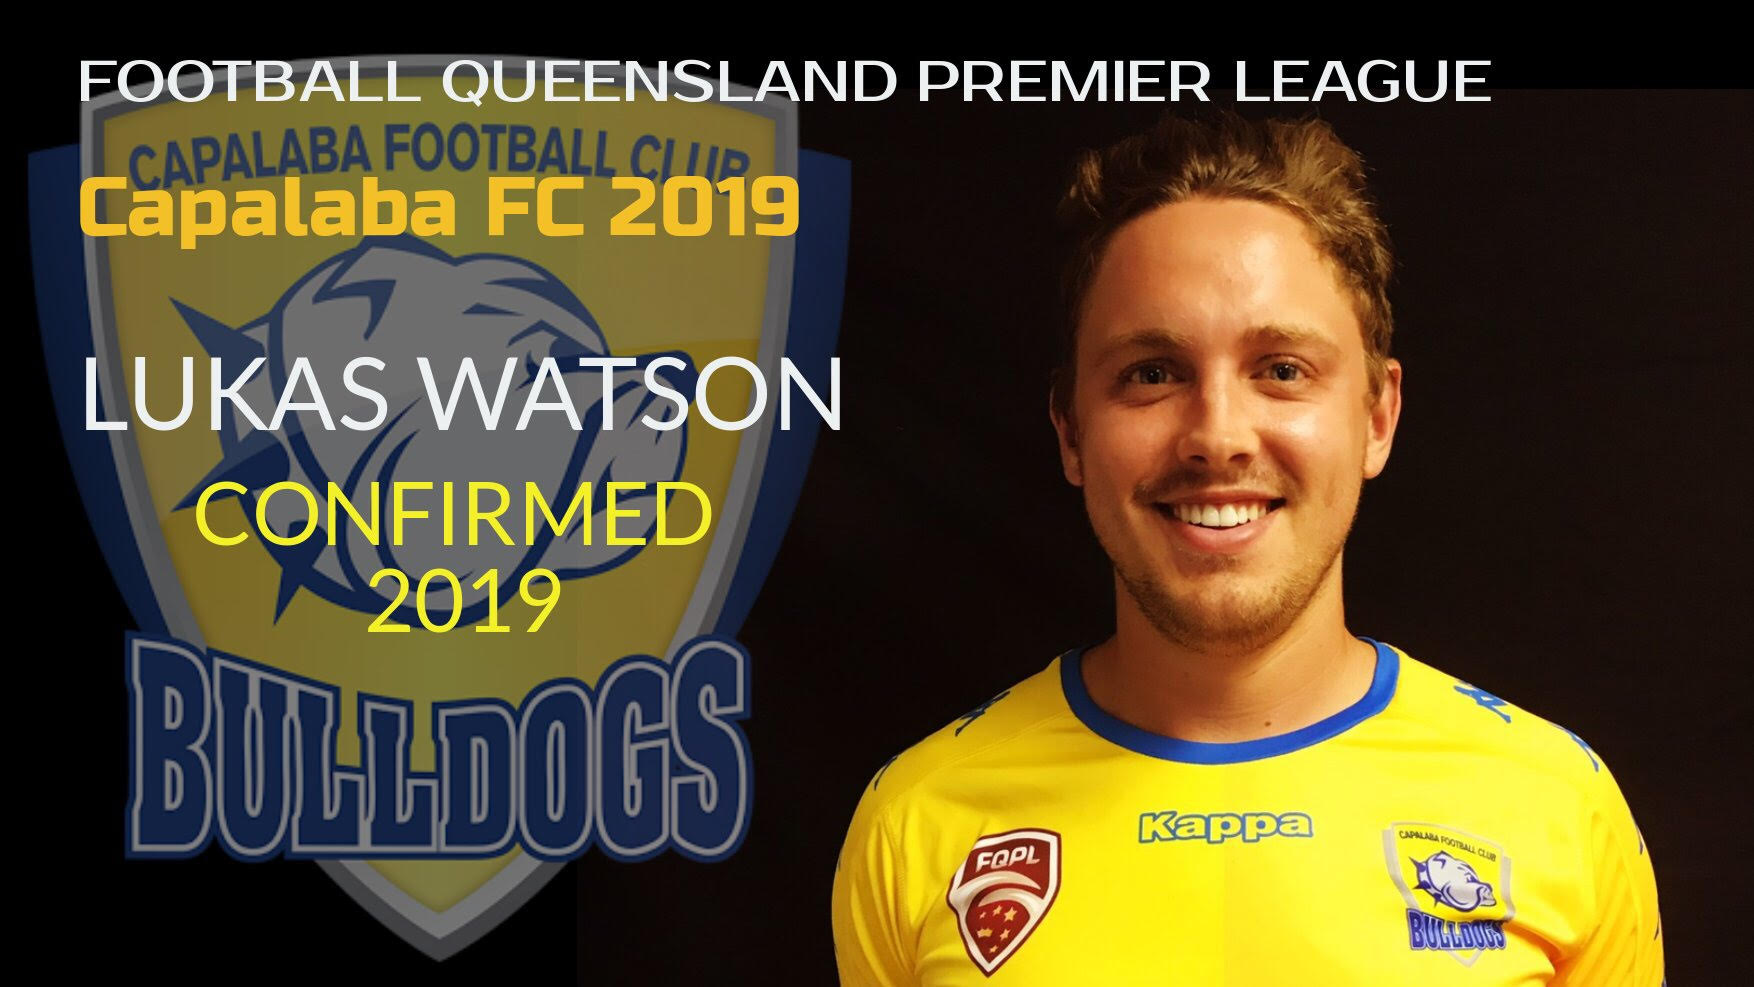 Lukas Watson Re-Signs for Capalaba FC in 2019